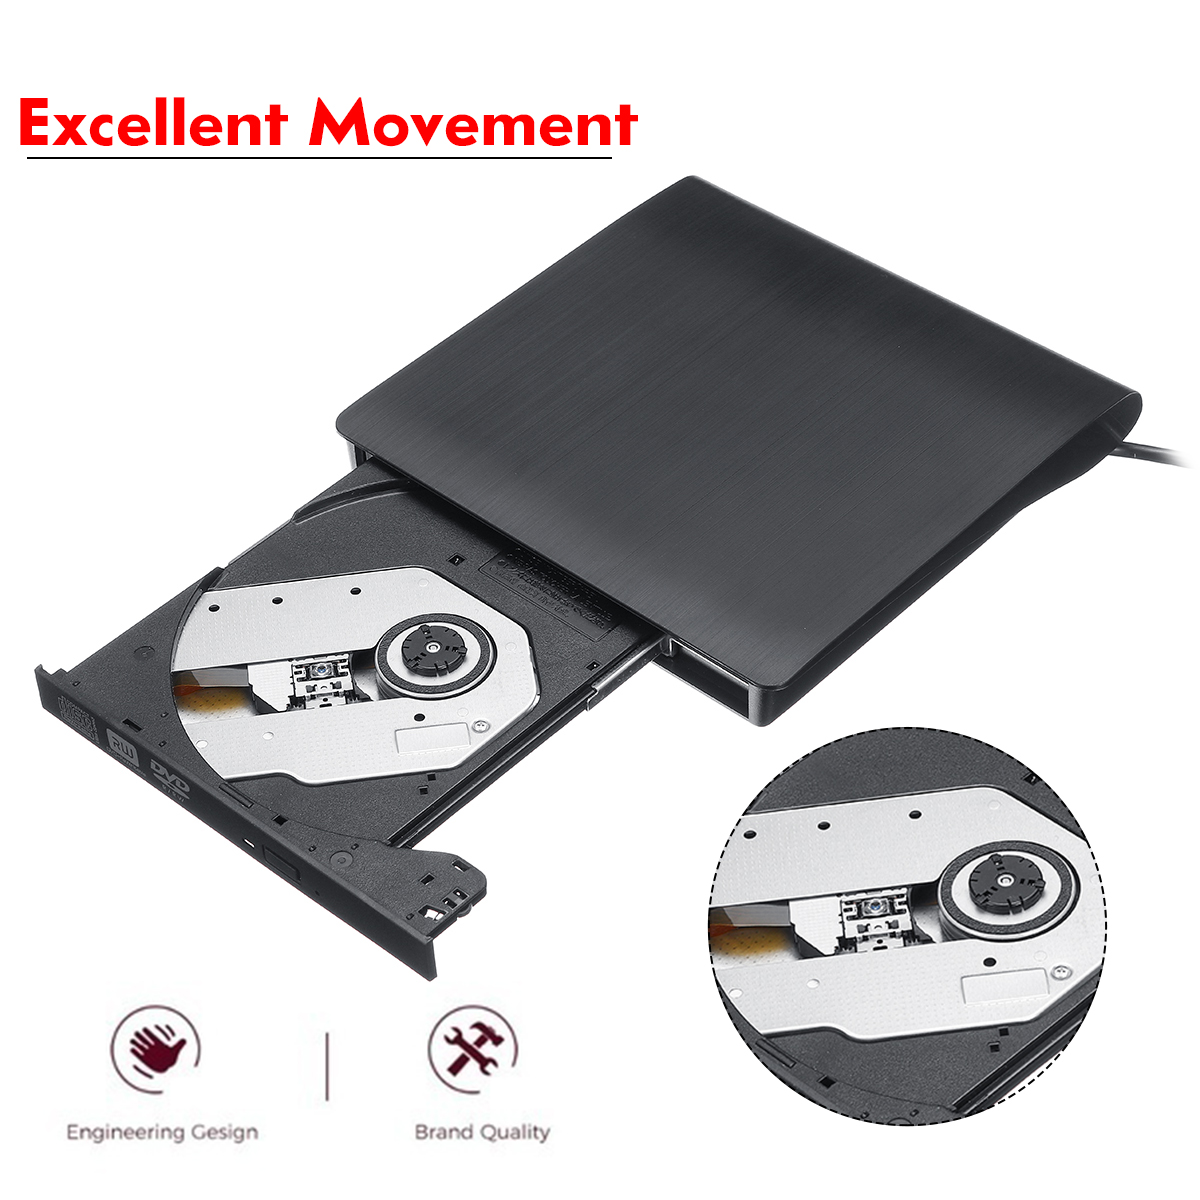 USB 3.0 External DVD-RW Optical Drive CD/DVD Player for PC Notebook